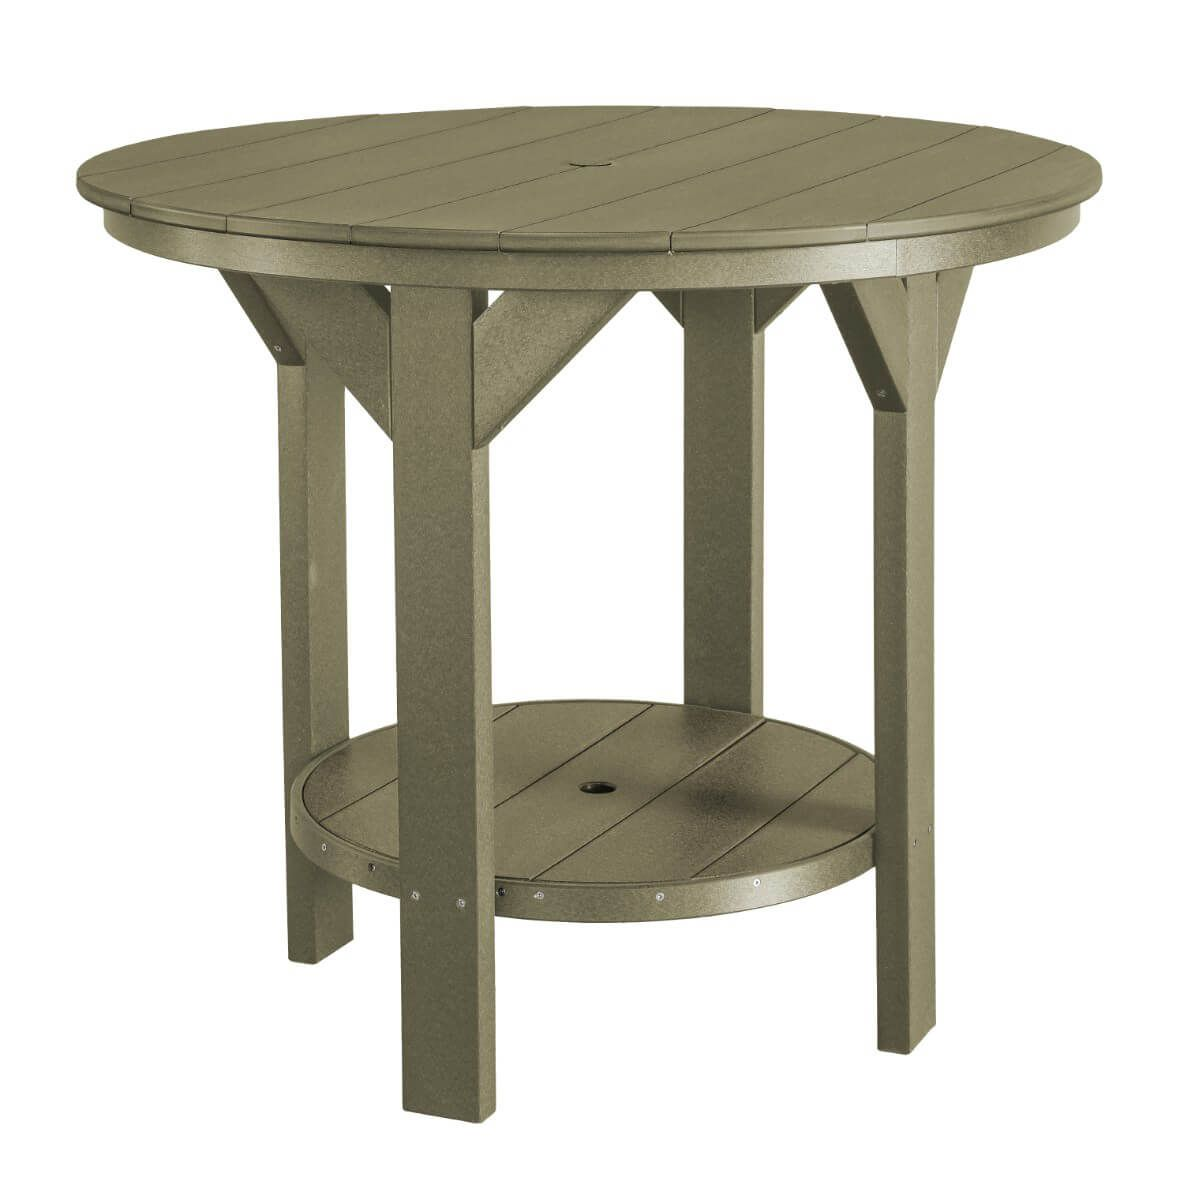 Olive Sidra Outdoor Pub Table